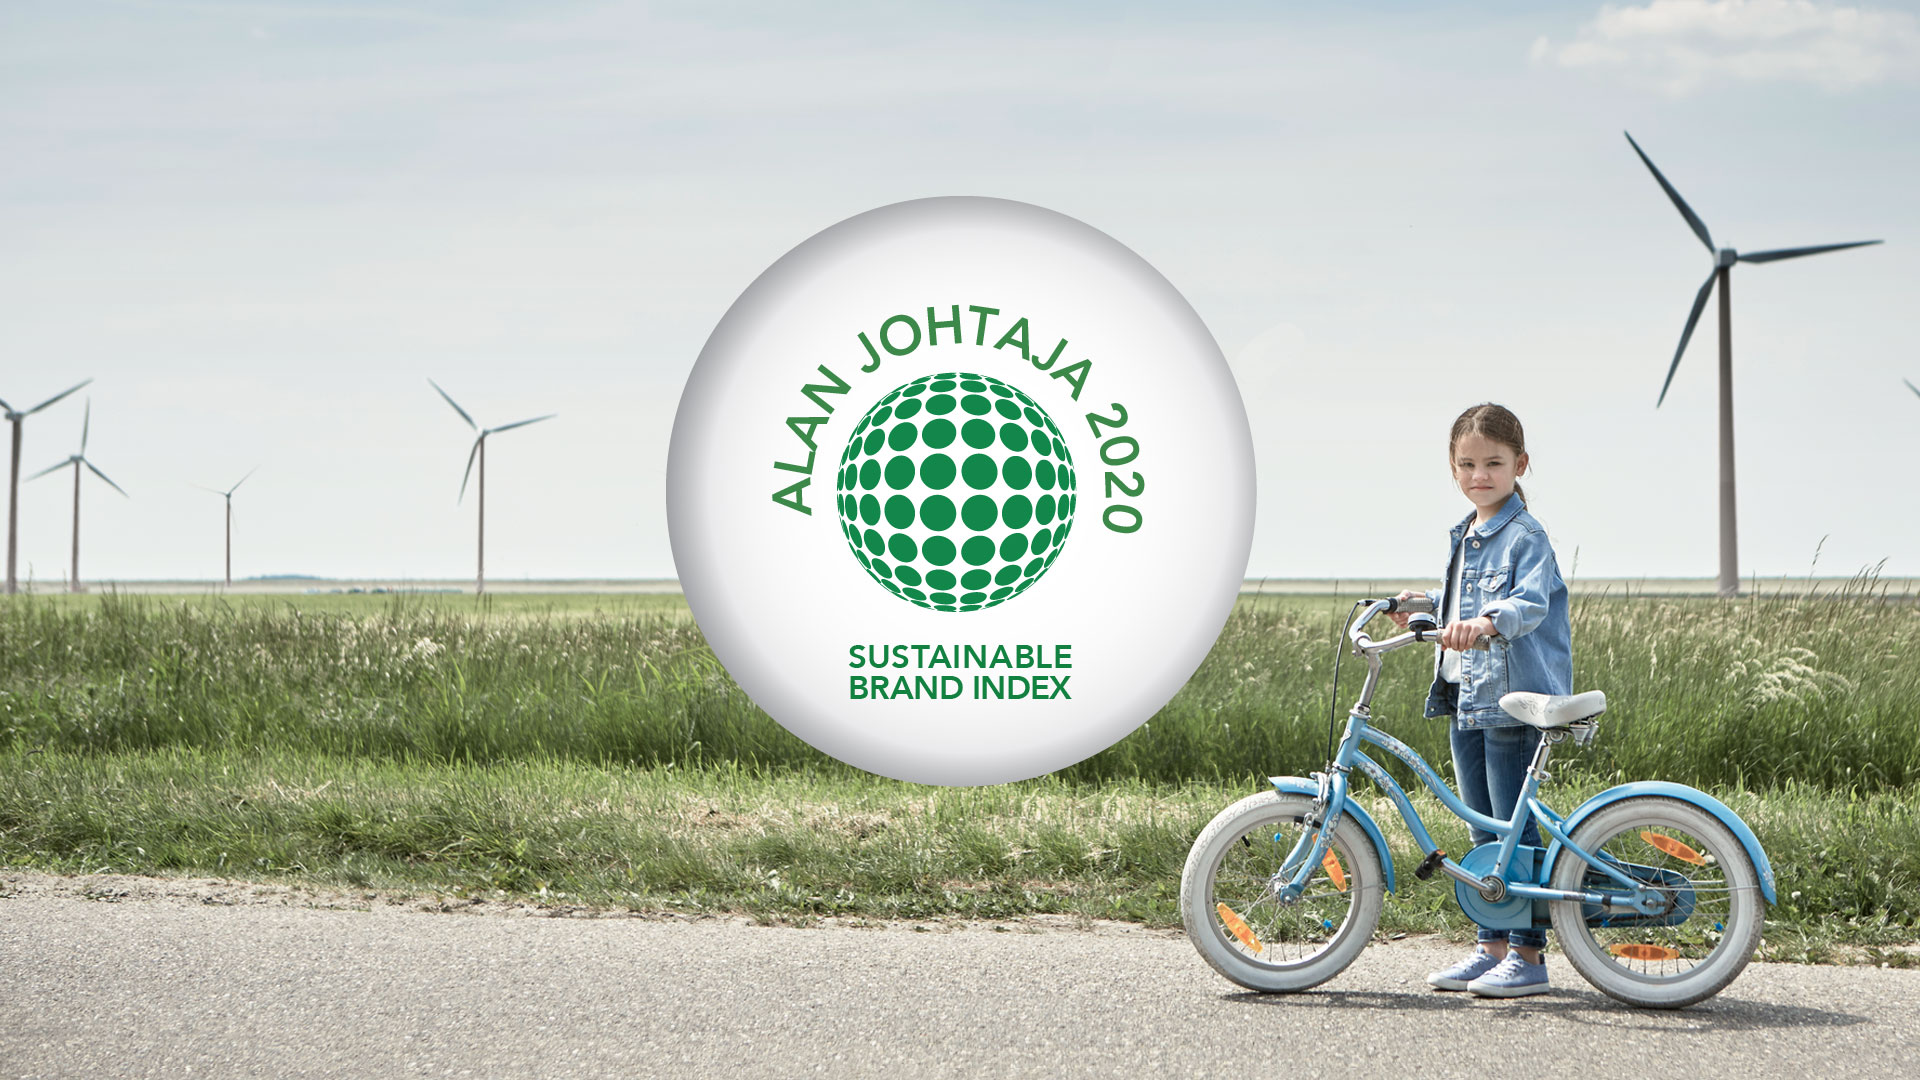 sustainable-brand-index-2020.jpg